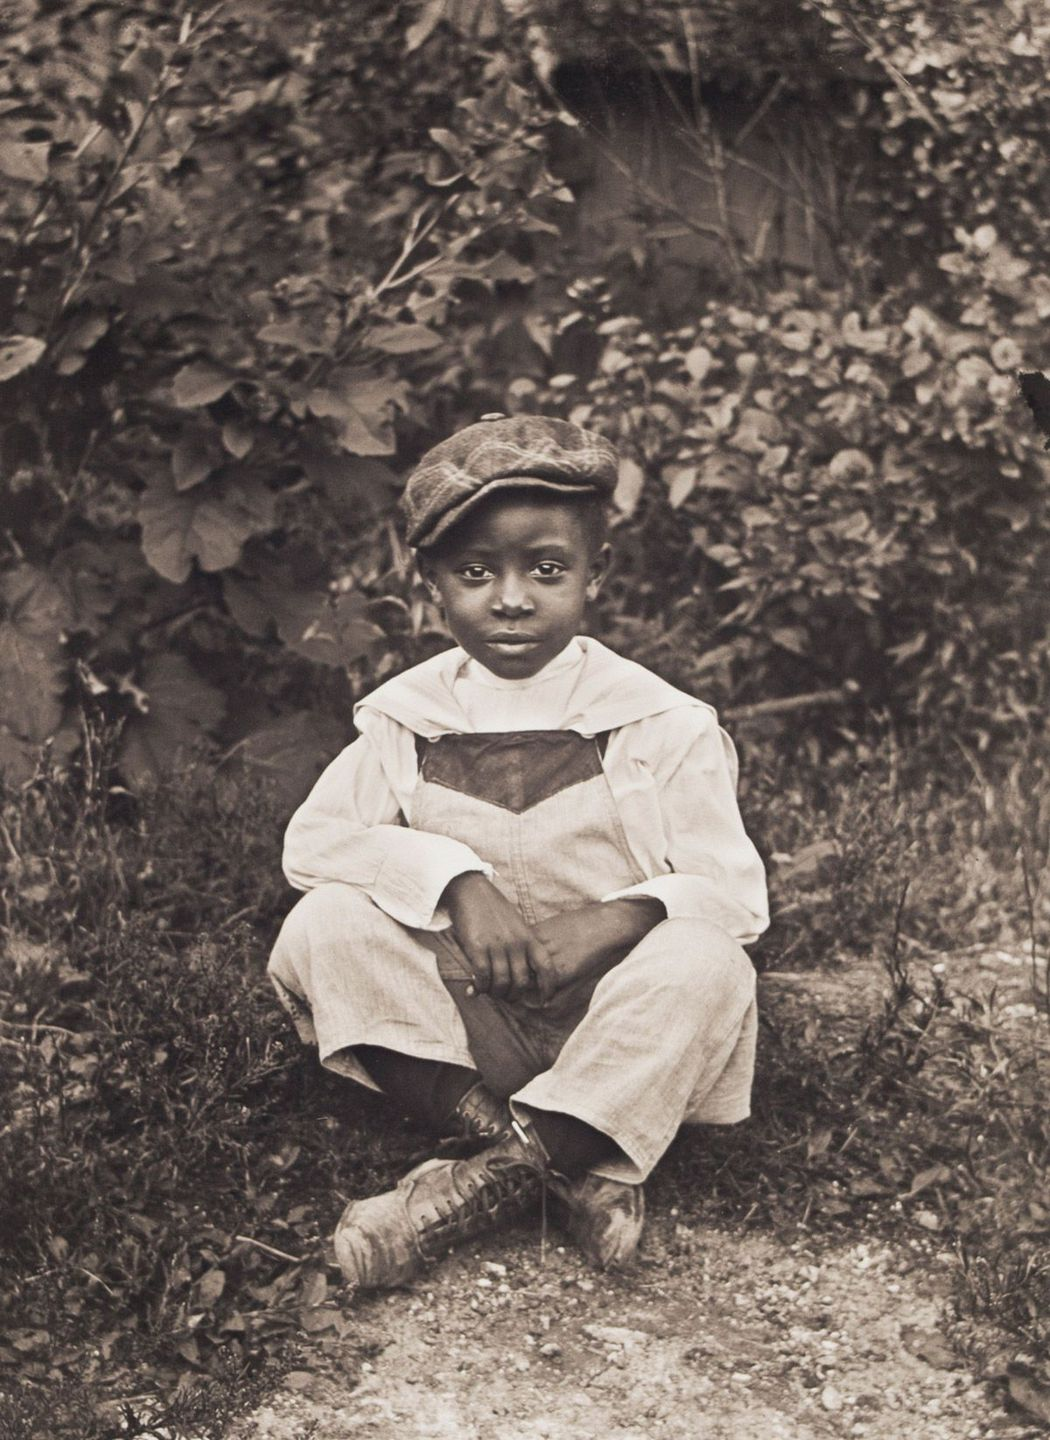 c. 1904 Portrait of Boy Sitting on Grass.